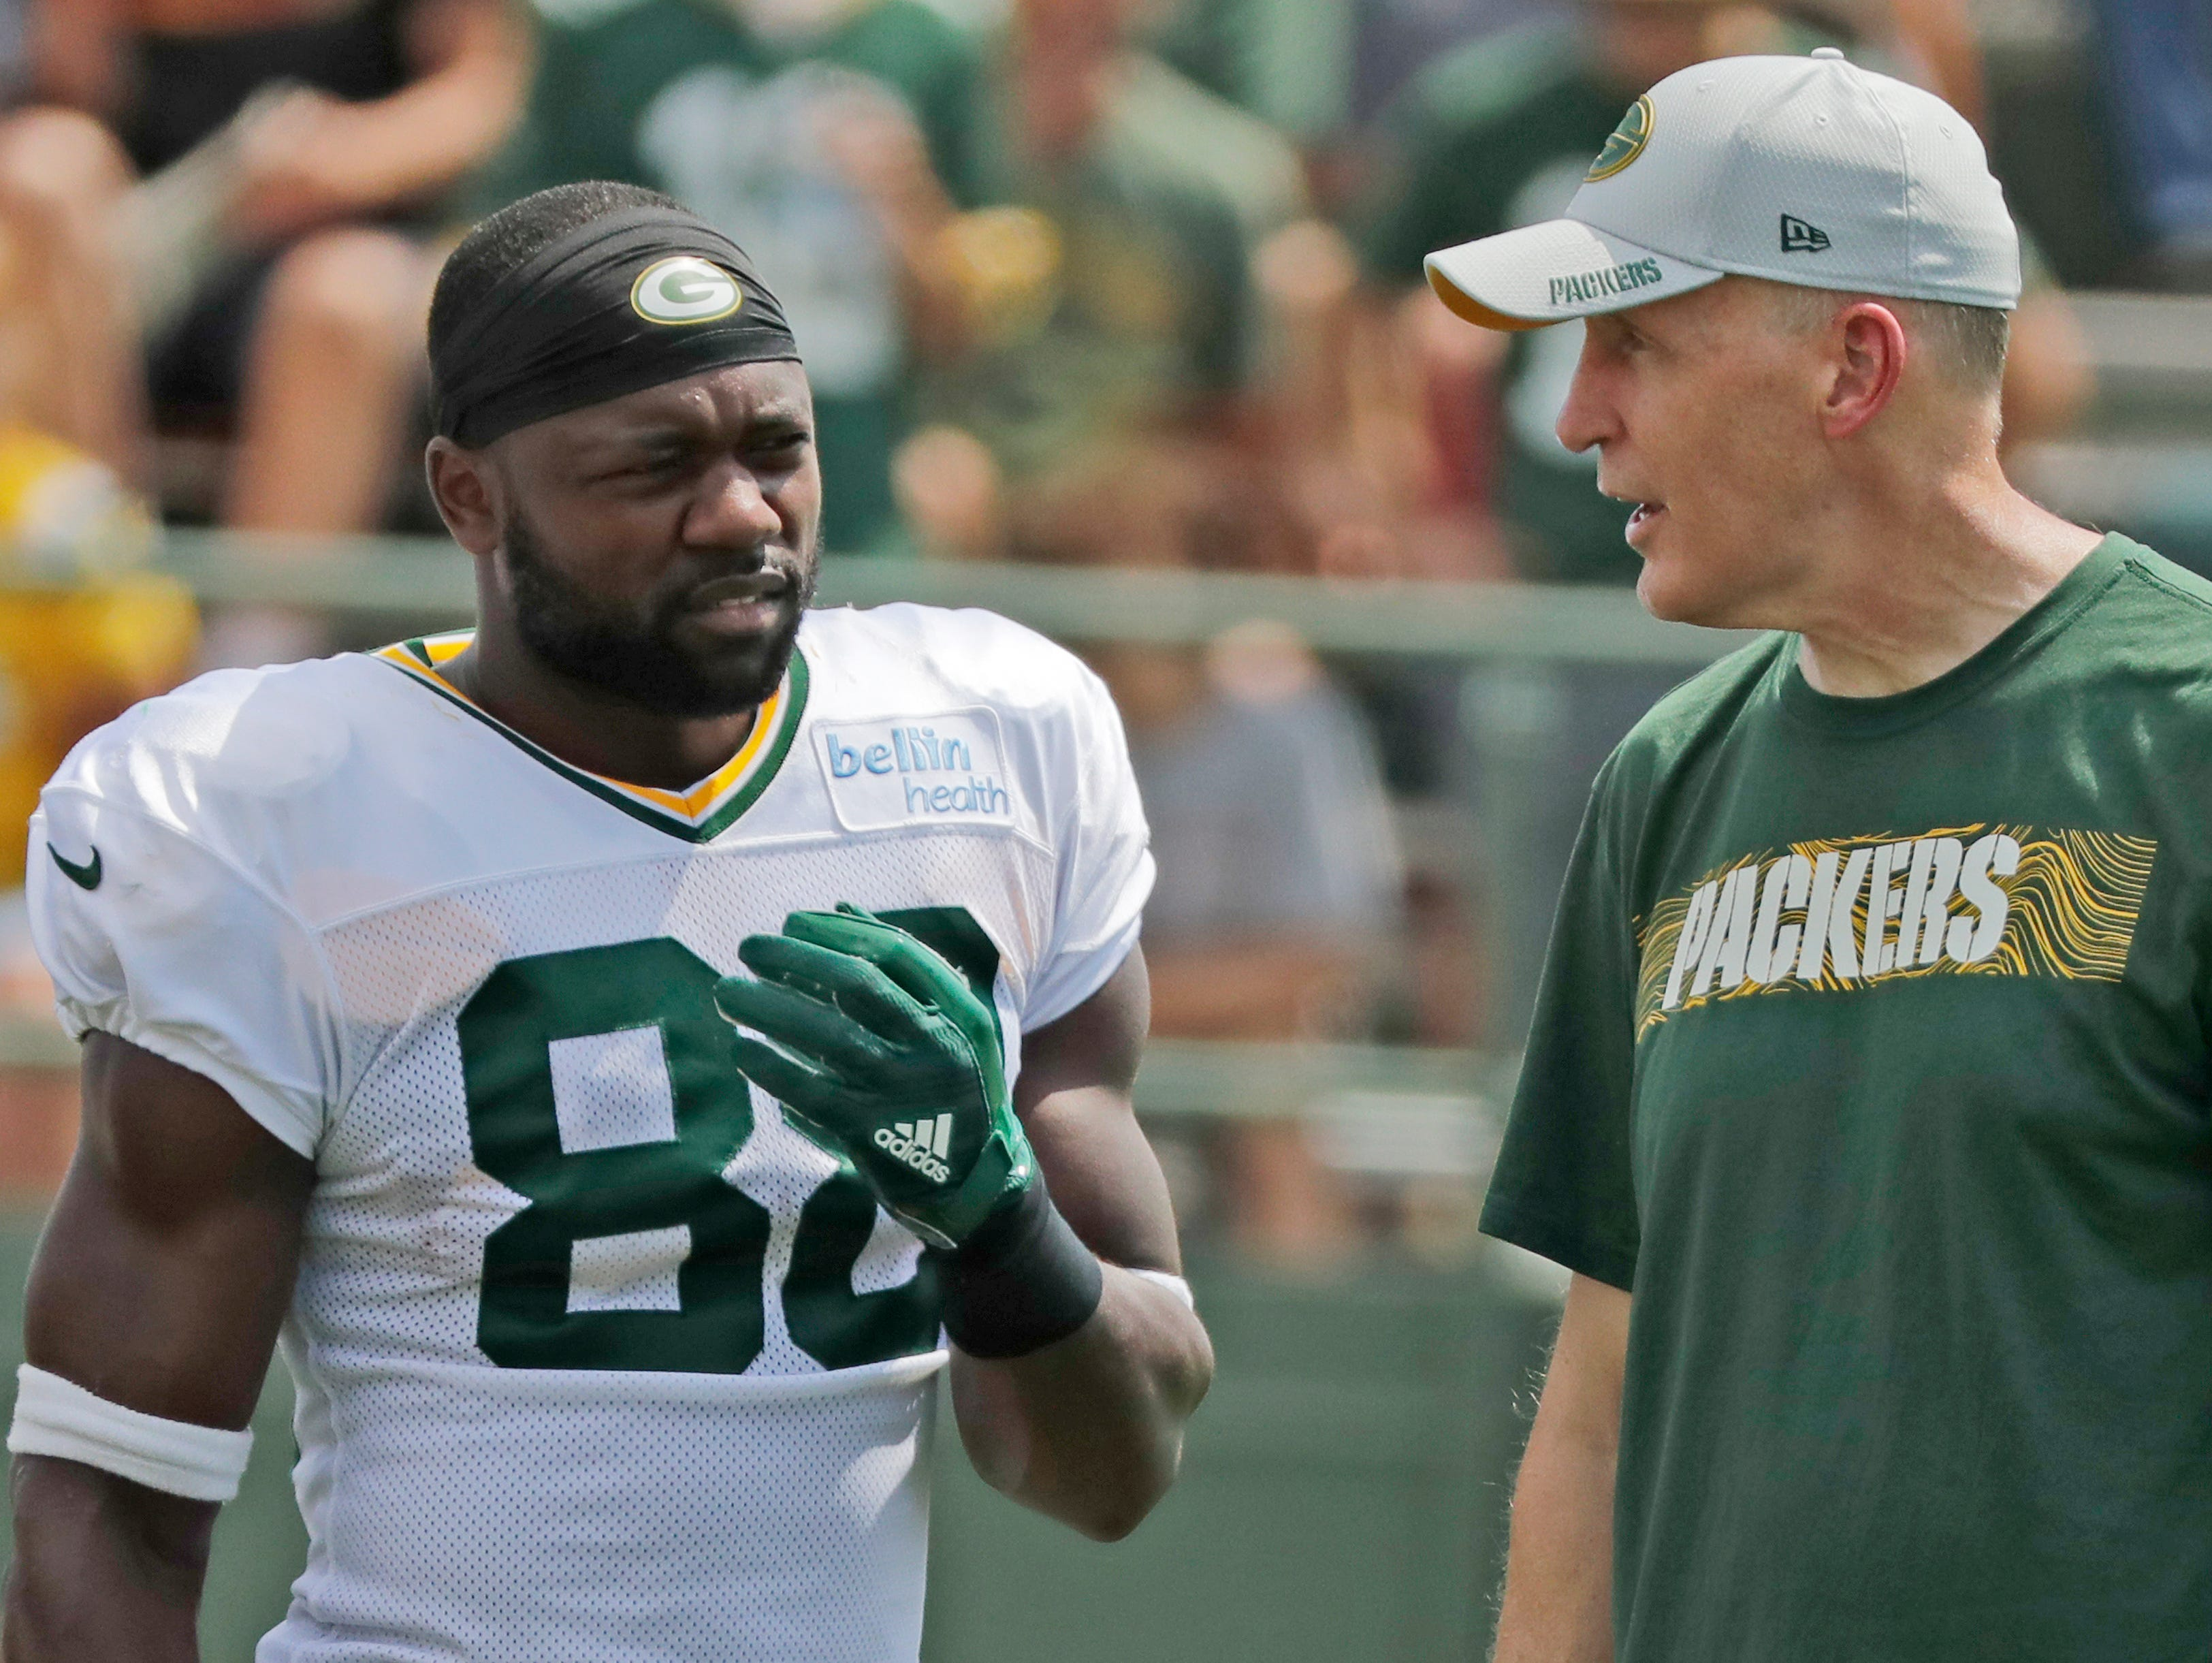 Green Bay Packers running back Ty Montgomery (88) talks to offensive coordinator Joe Philbin during training camp practice at Ray Nitschke Field on Friday, August 3, 2018 in Ashwaubenon, Wis. 